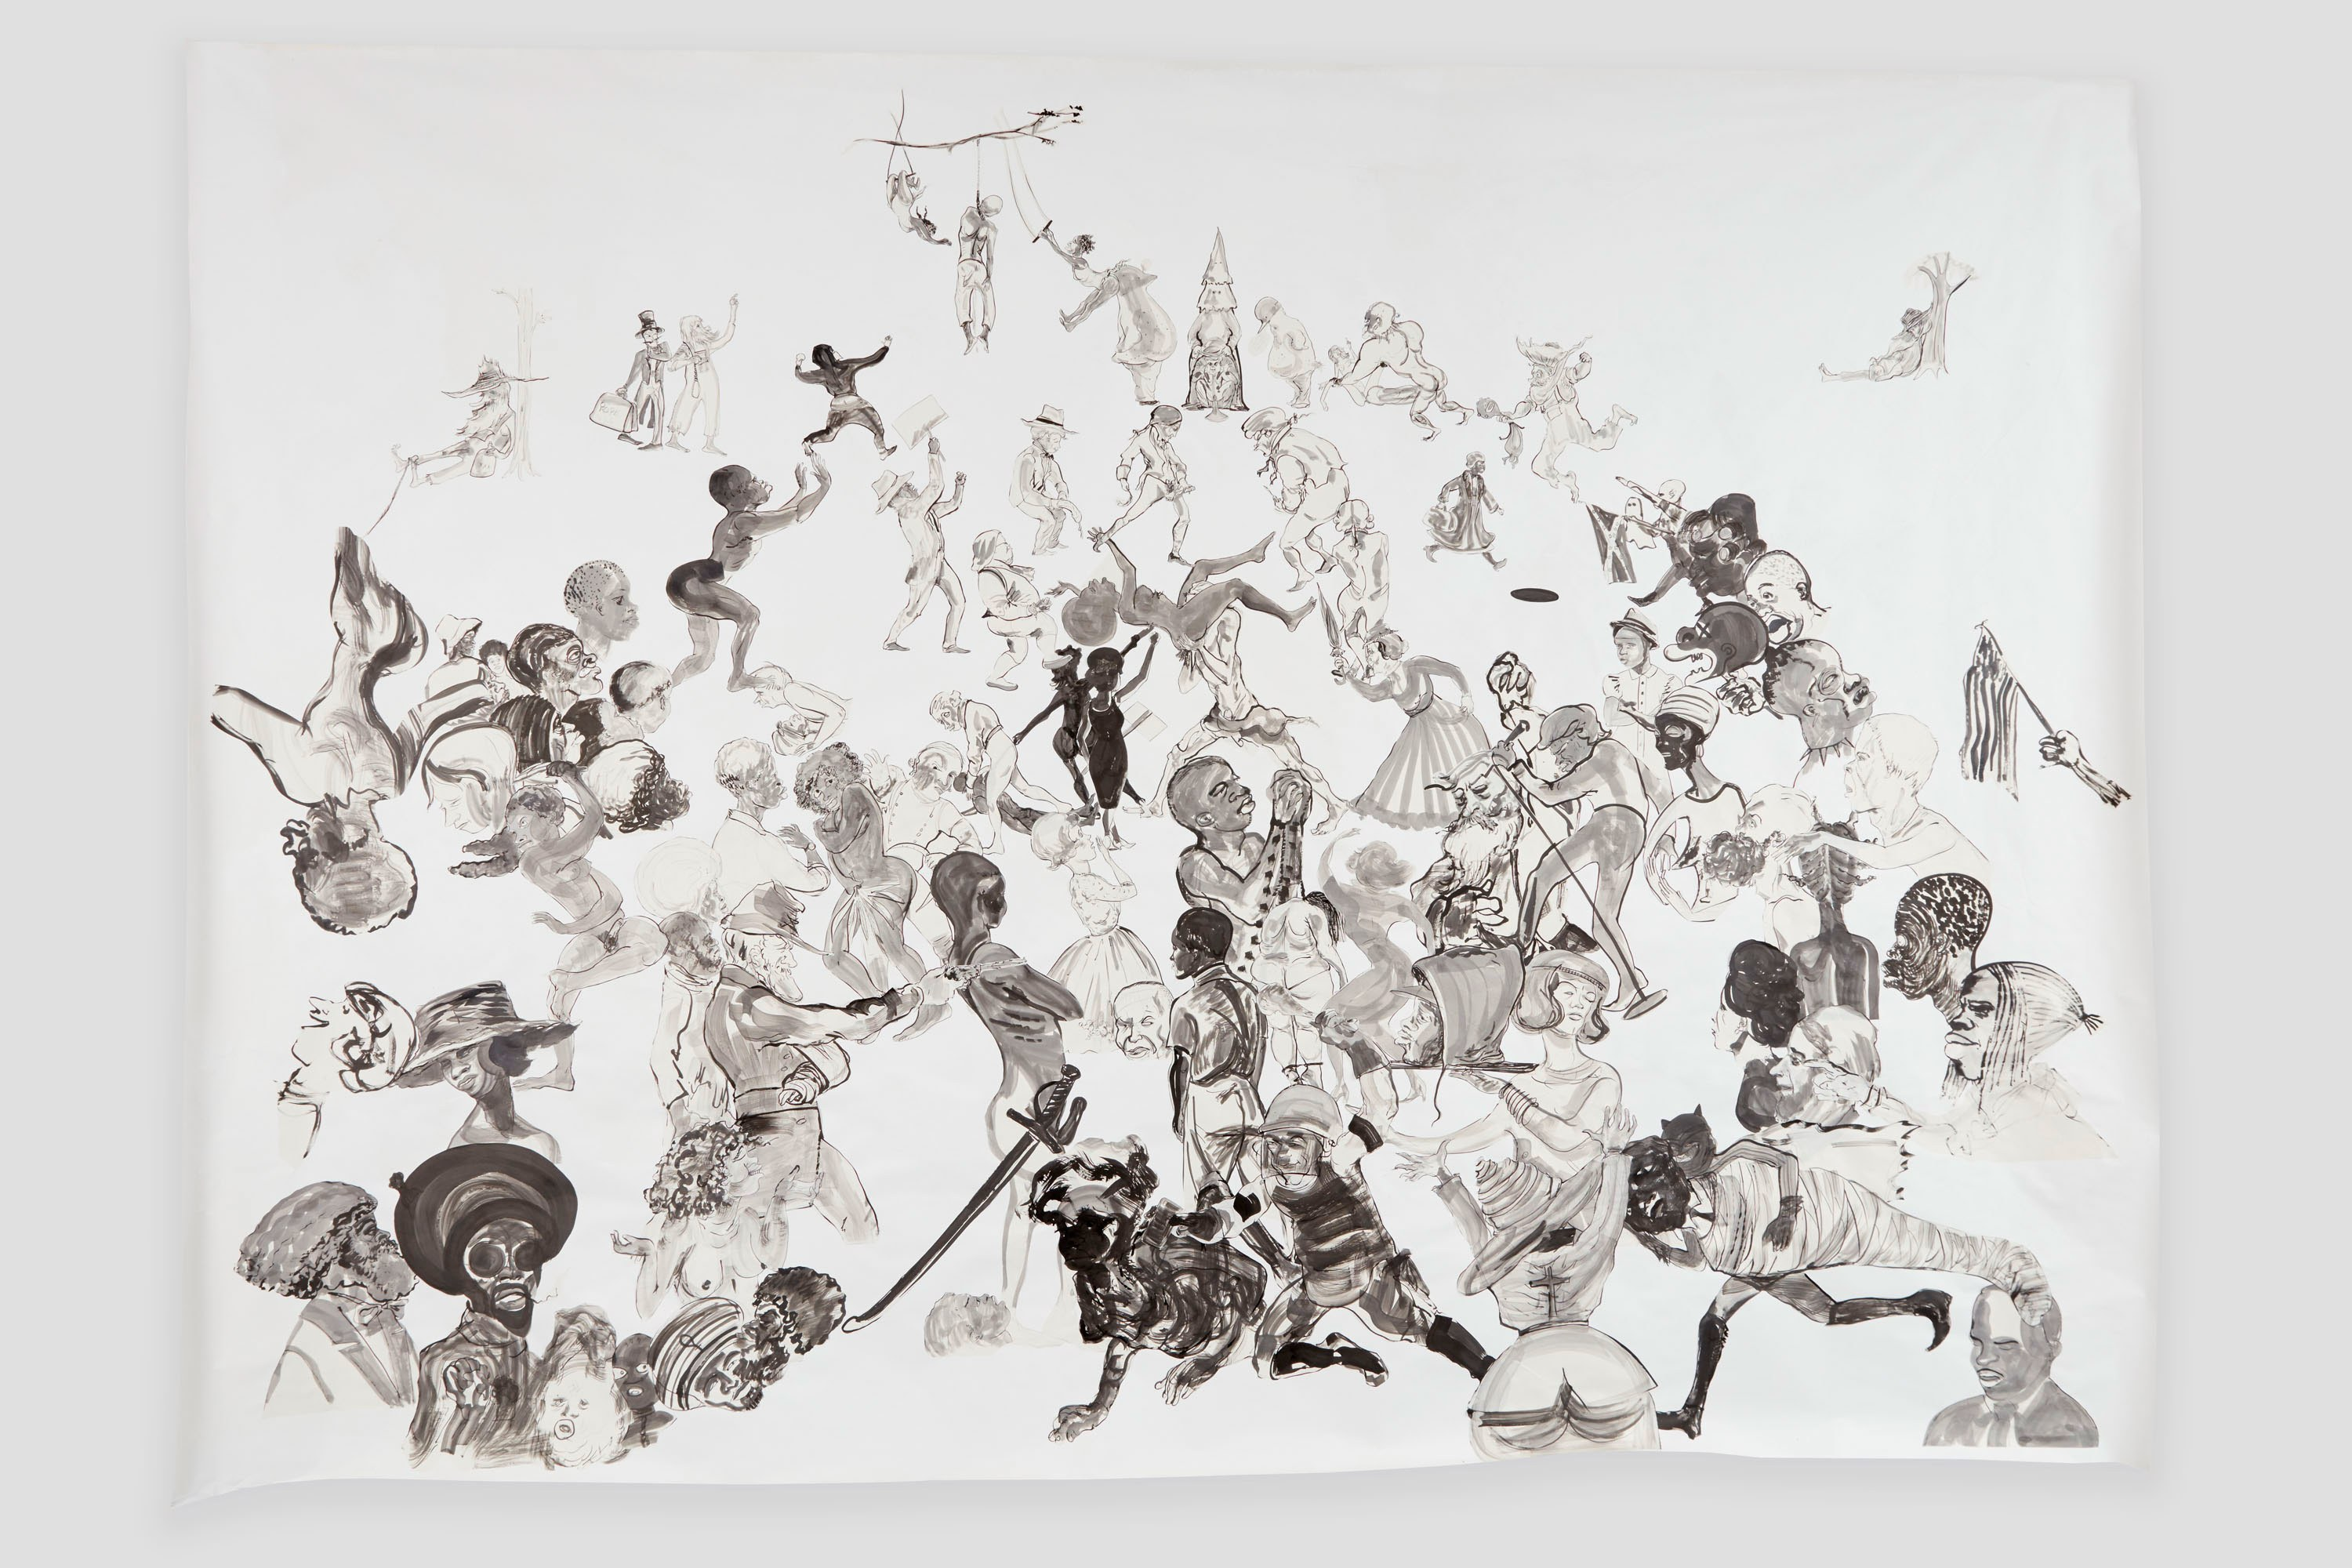 Kara Walker: The most Astounding and Important Painting show of the fall Art Show viewing season!